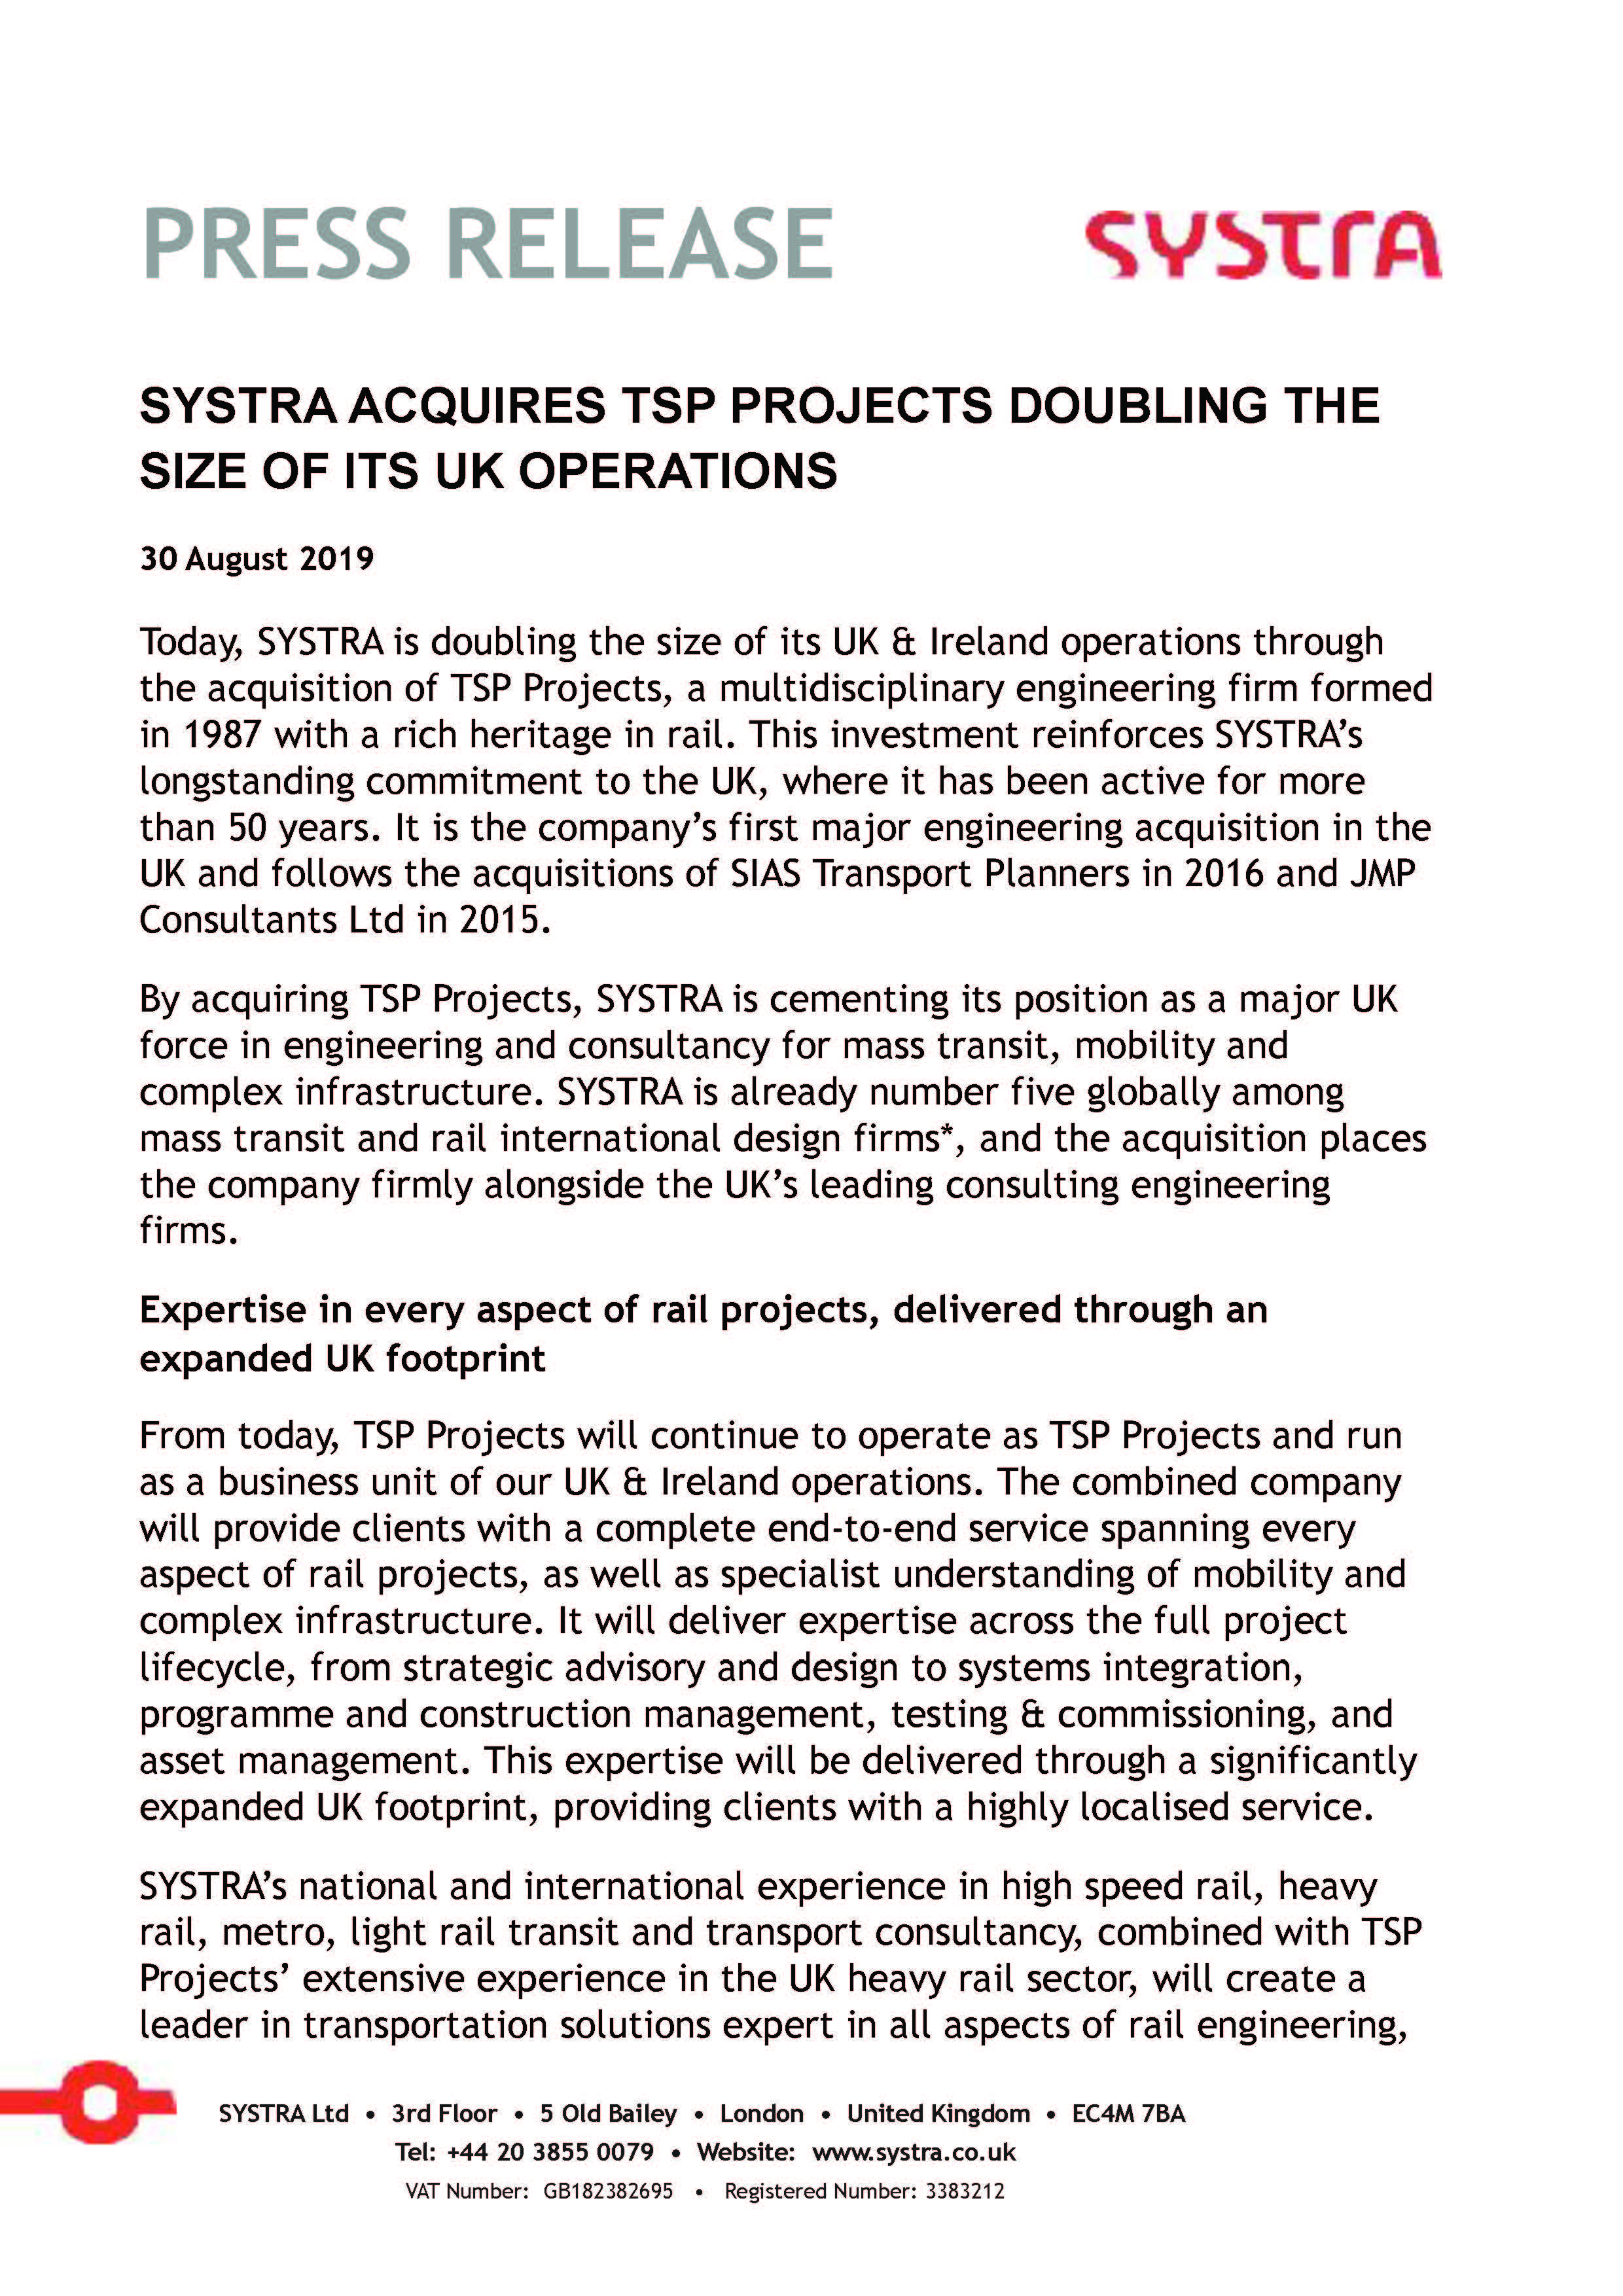 SYSTRA UK - a consulting and engineering firm, a world